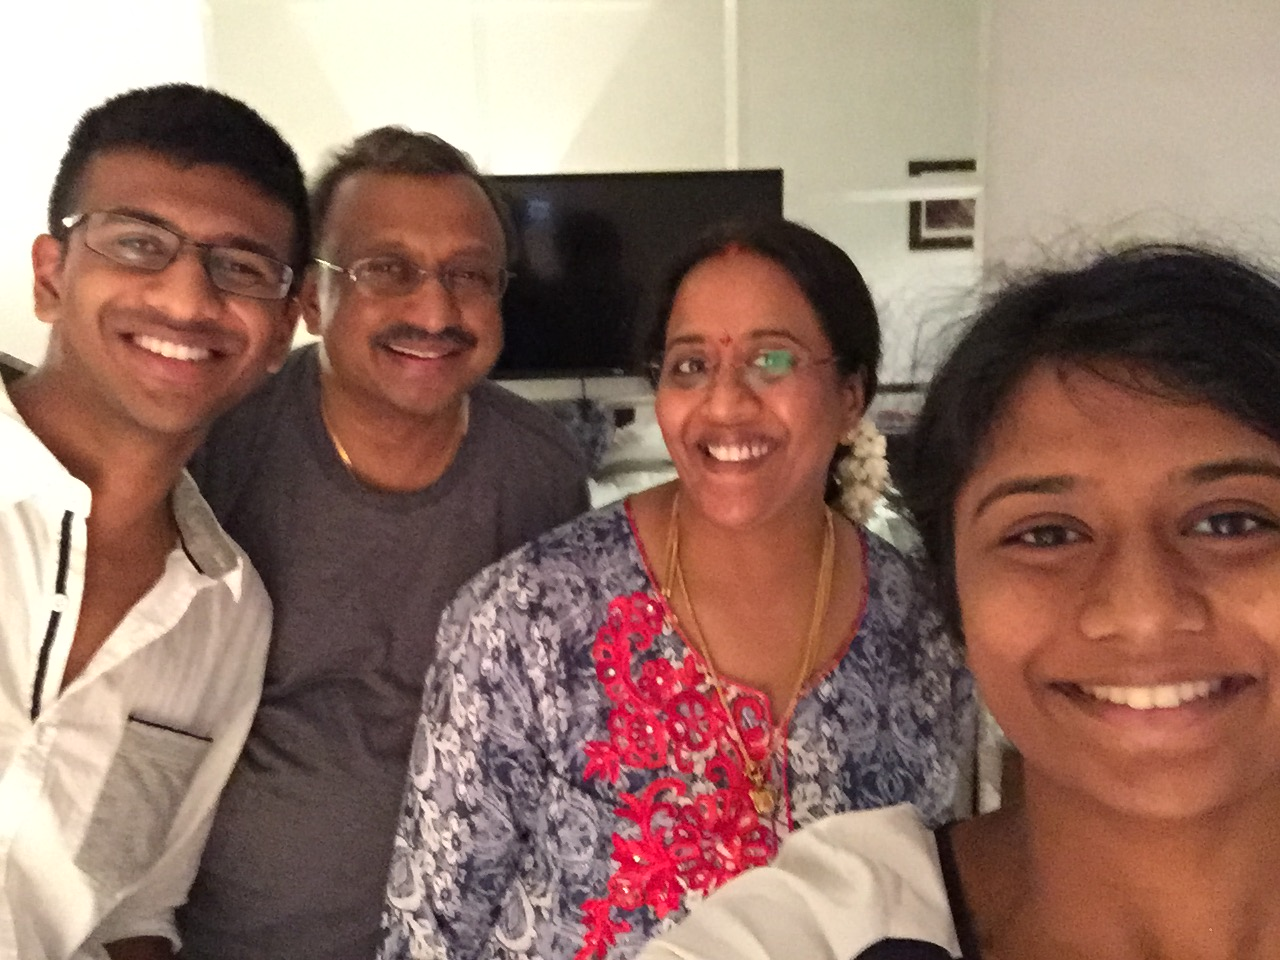 Living so close to India, Varsha got to visit family she hadn't seen in 14 years.She's pictured here with her parents and brother.